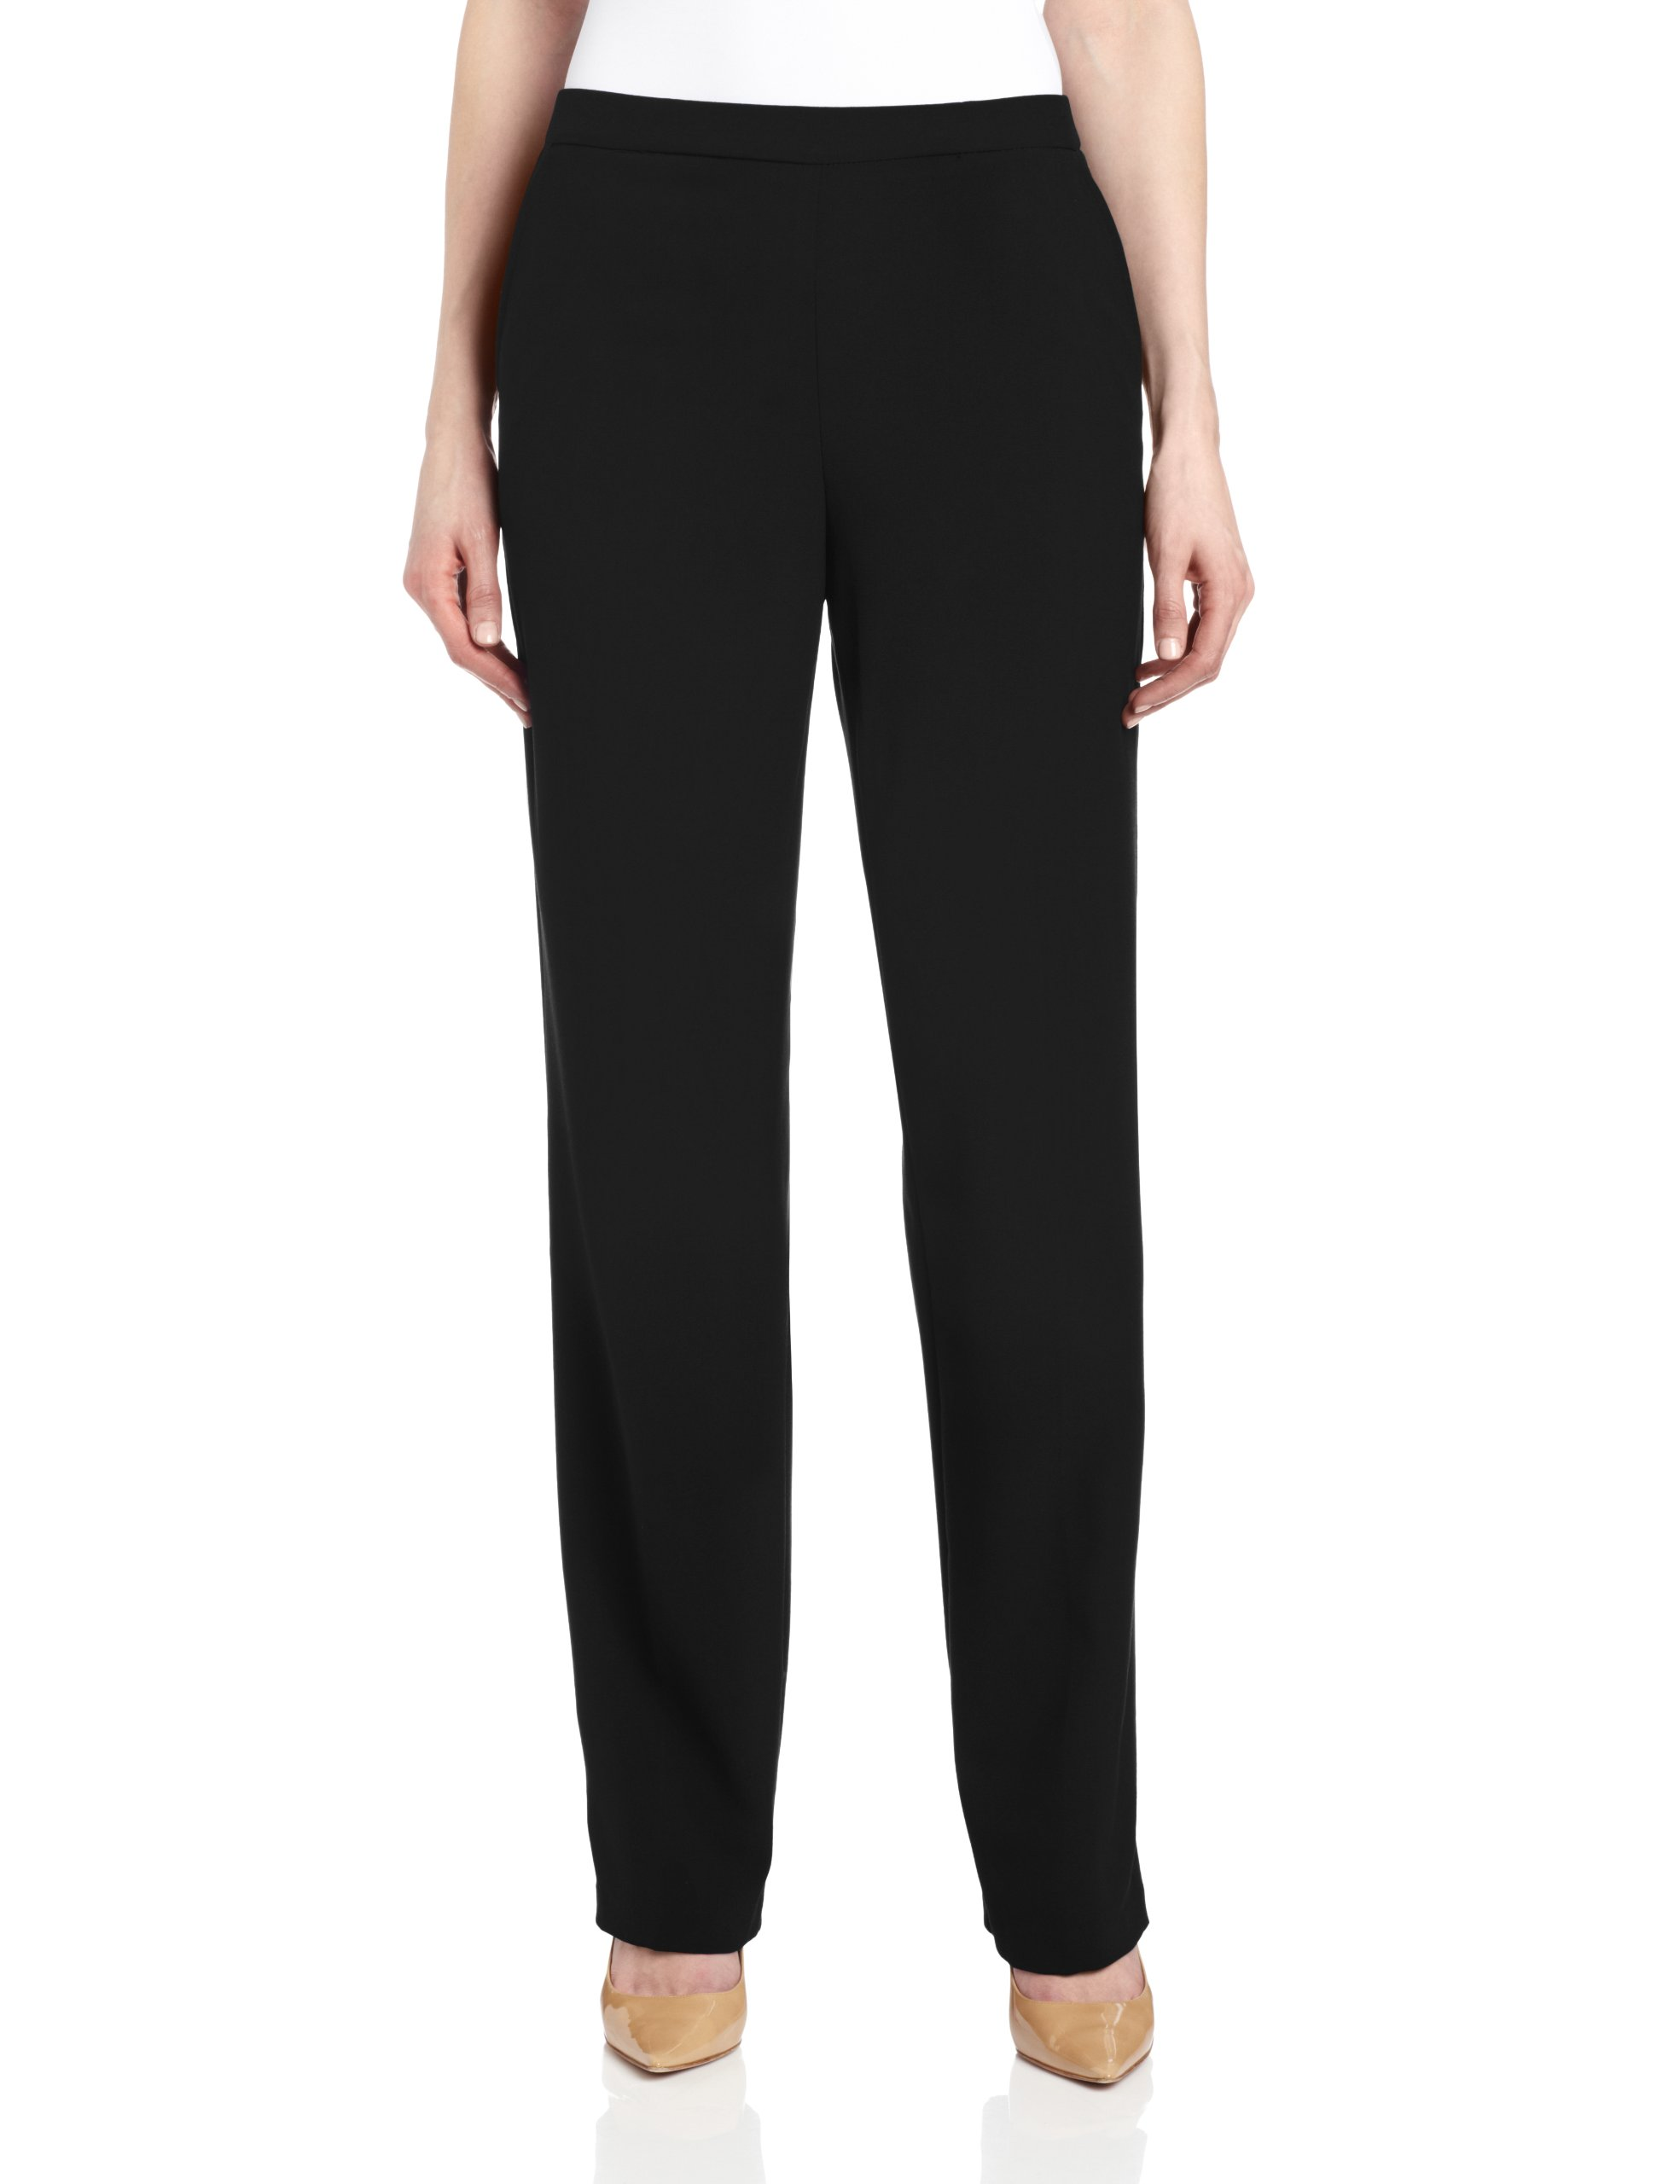 Briggs New York Women's All Around Comfort Pant,Black,18